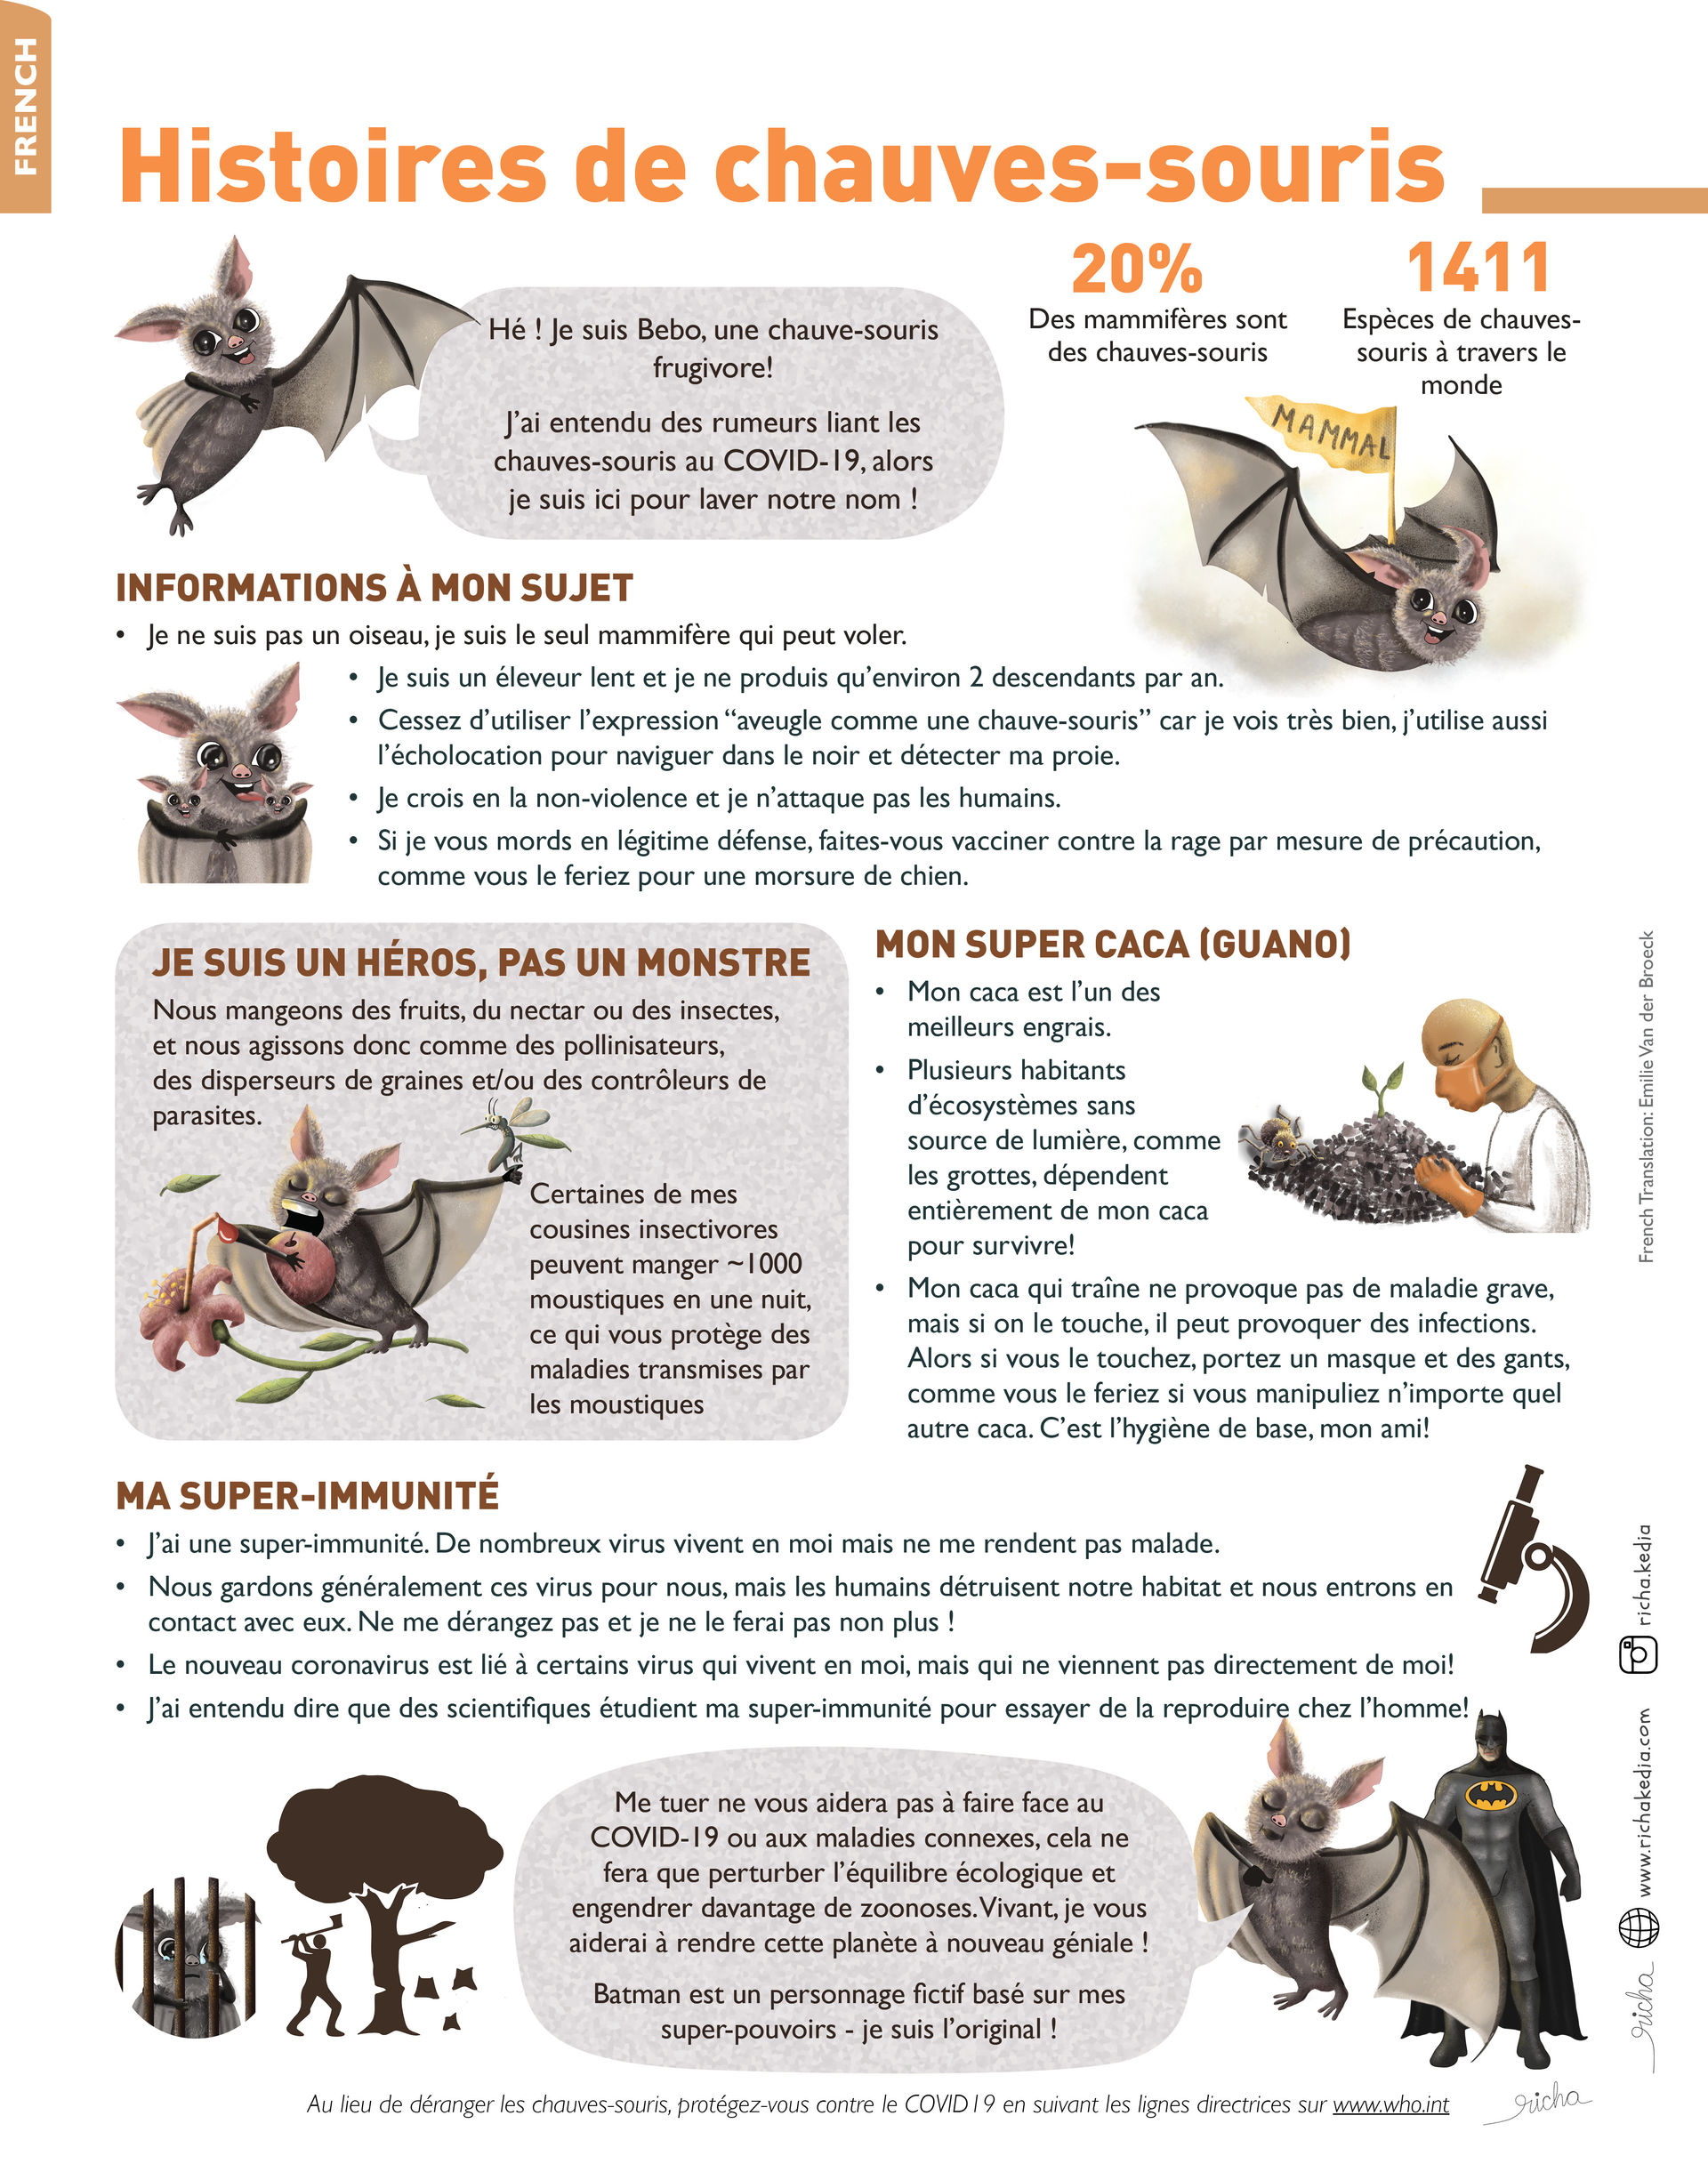 Bat Infographic french.jpg